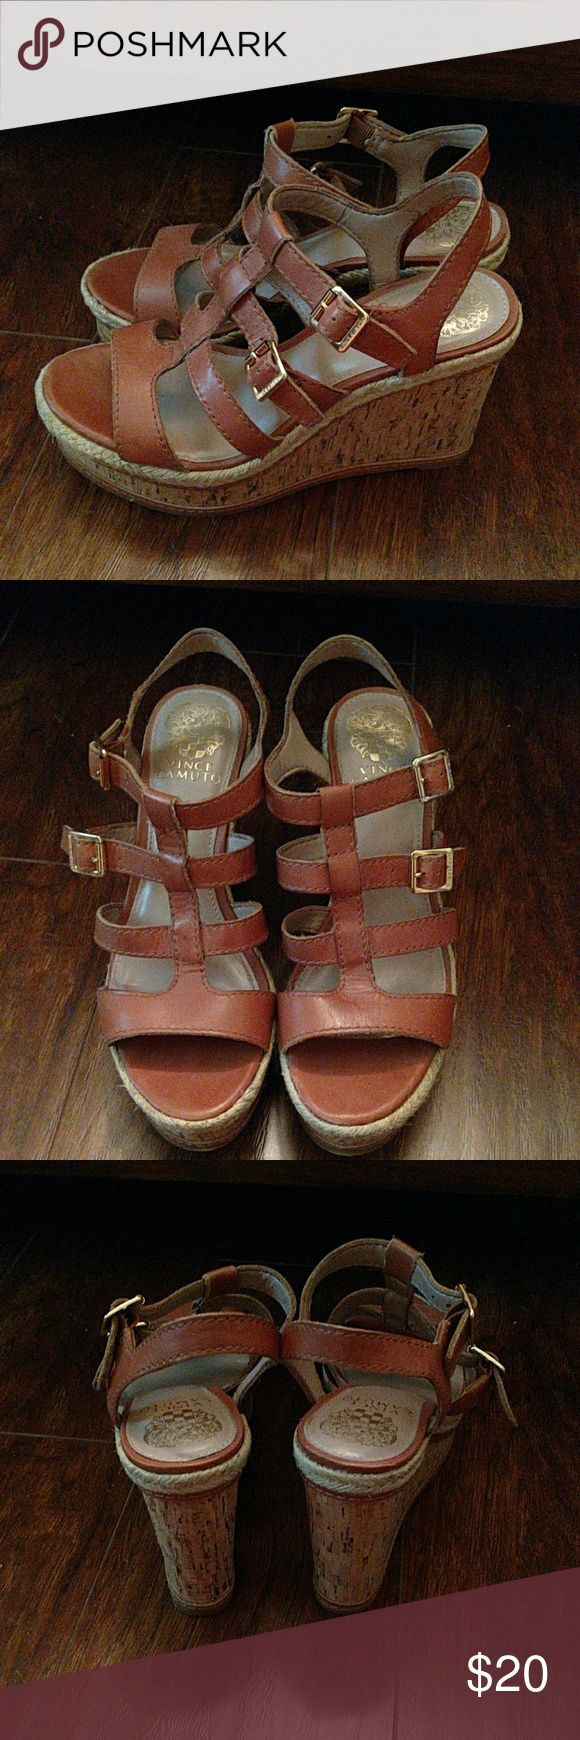 Vince Camuto Camel Wedge Shoes 6.5 Super cute double strap wedge shoes. Perfect with any outfit. Vince Camuto Shoes Wedges